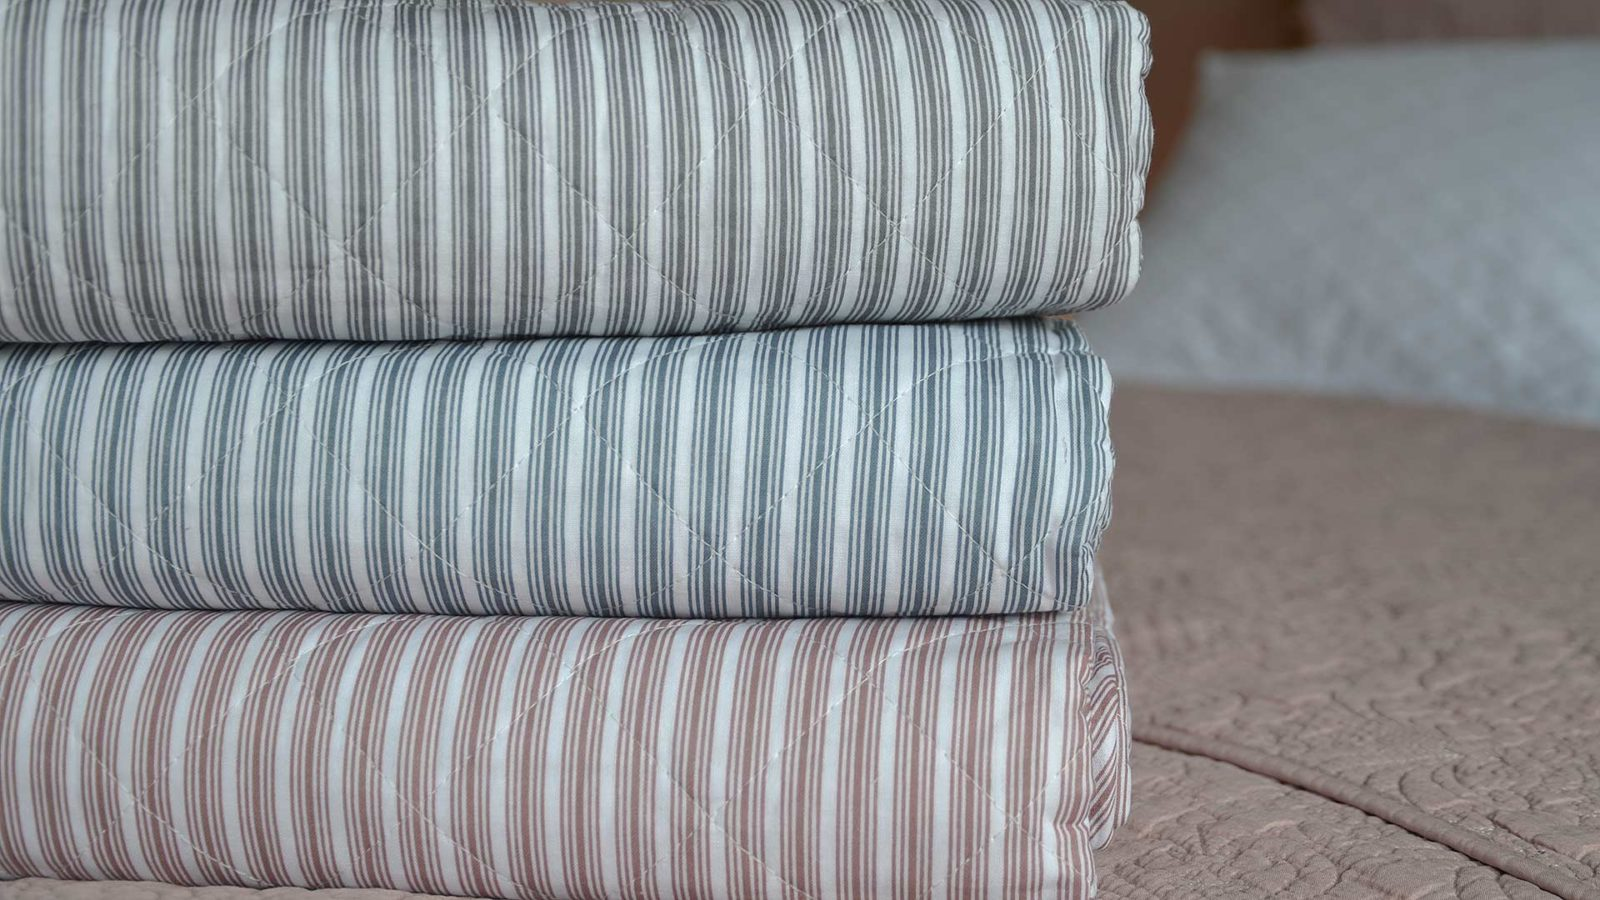 Multi-stripe cotton quilted blankets